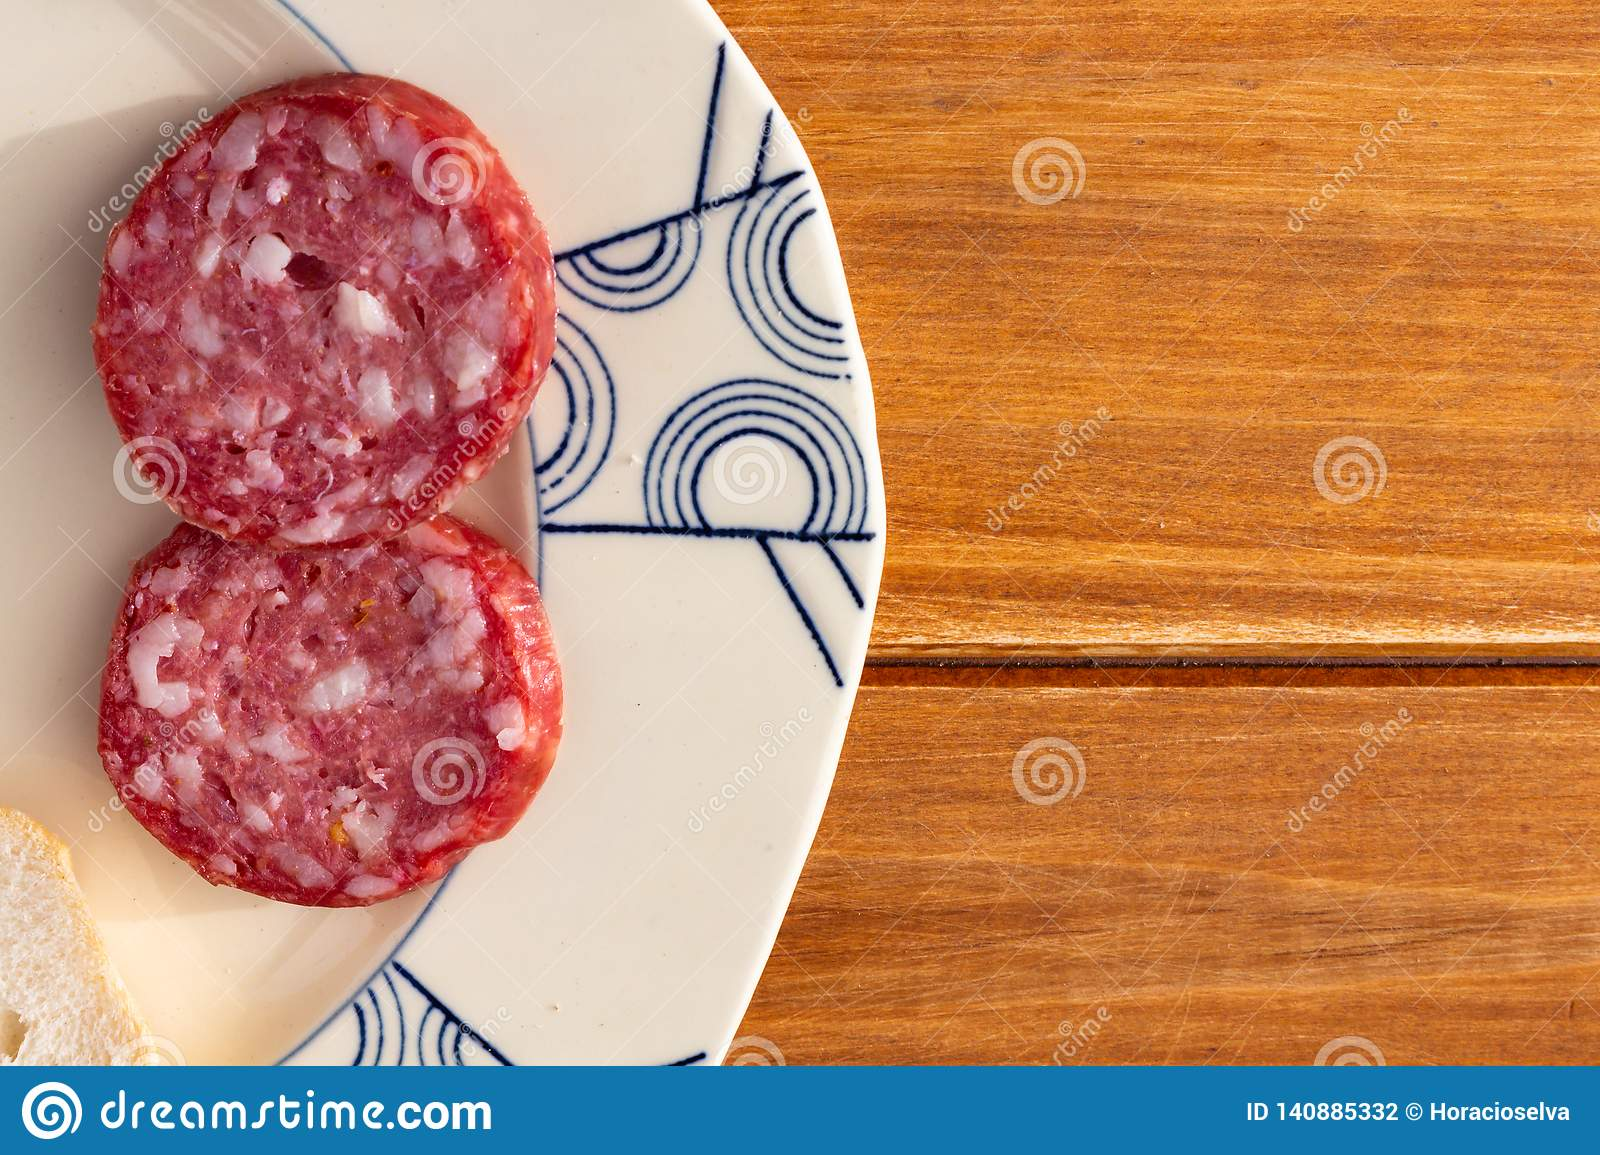 Some slices of salami on an old ceramic plate on a wooden rustic table. Food for a snack